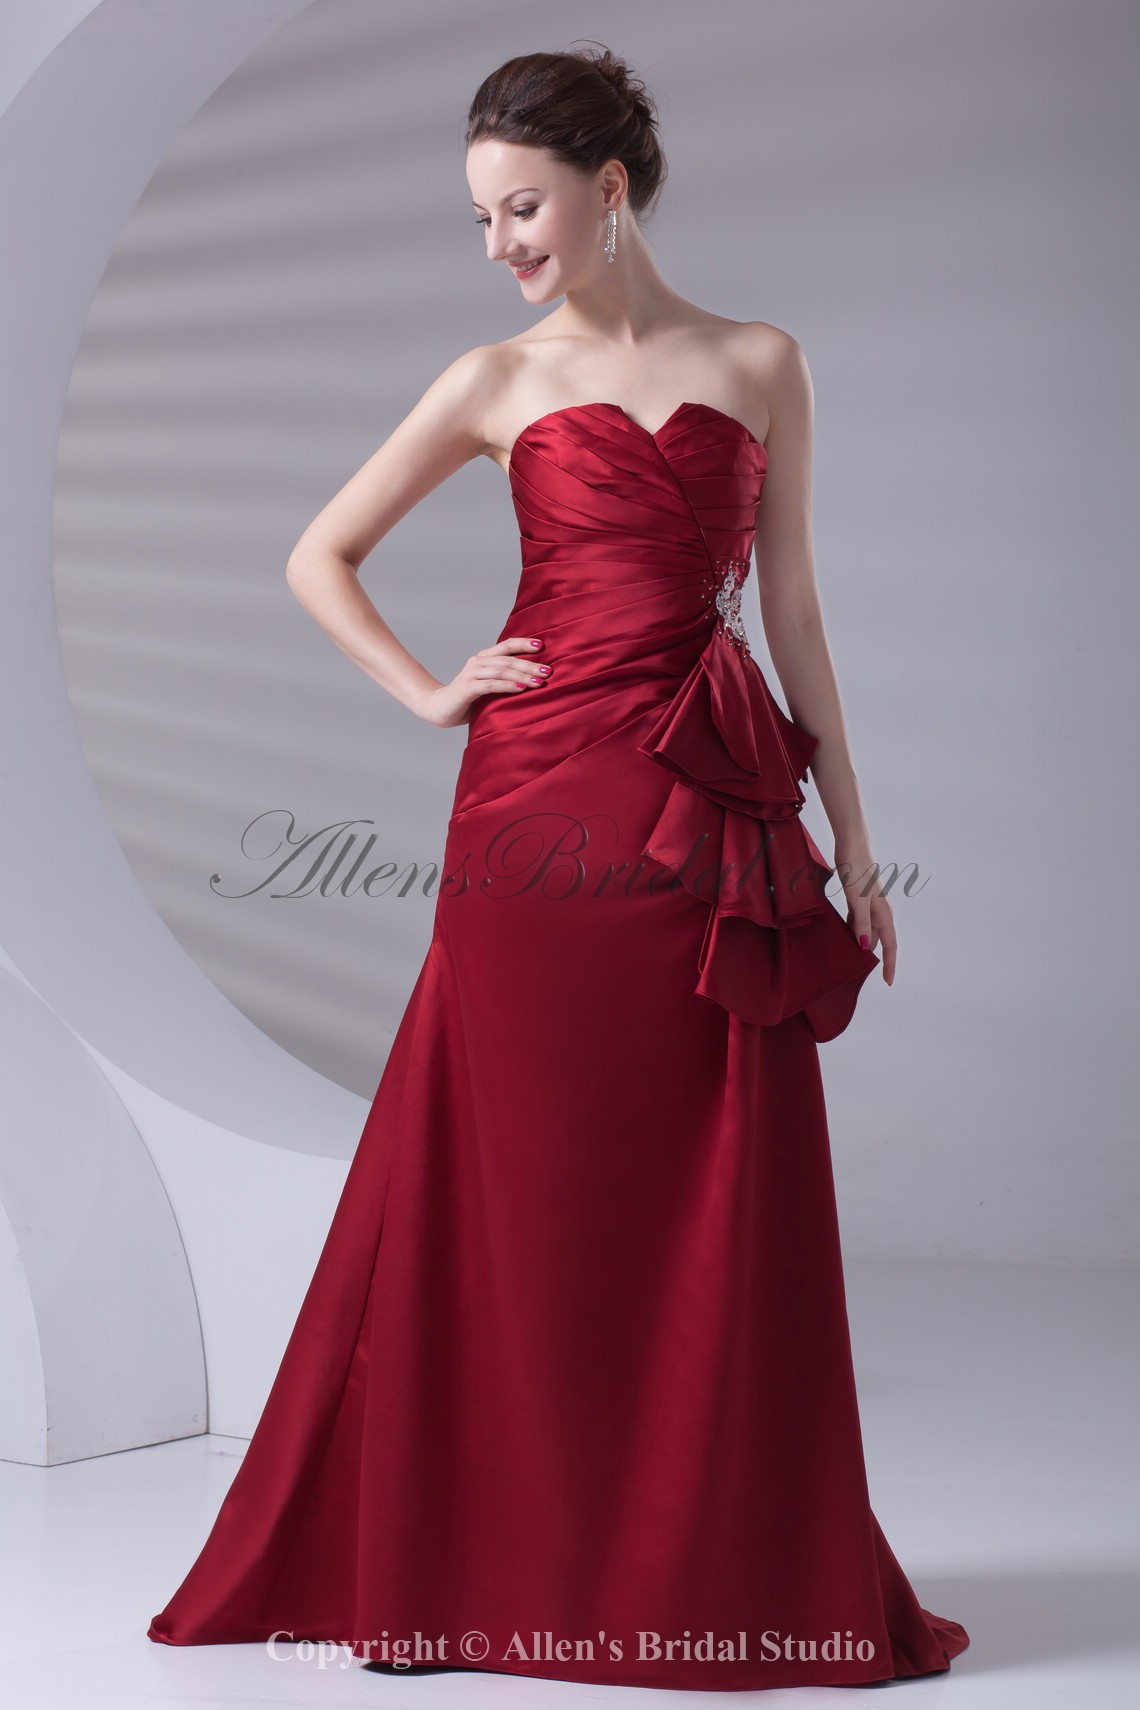 /401-3204/satin-strapless-a-line-floor-length-ruched-prom-dress.jpg